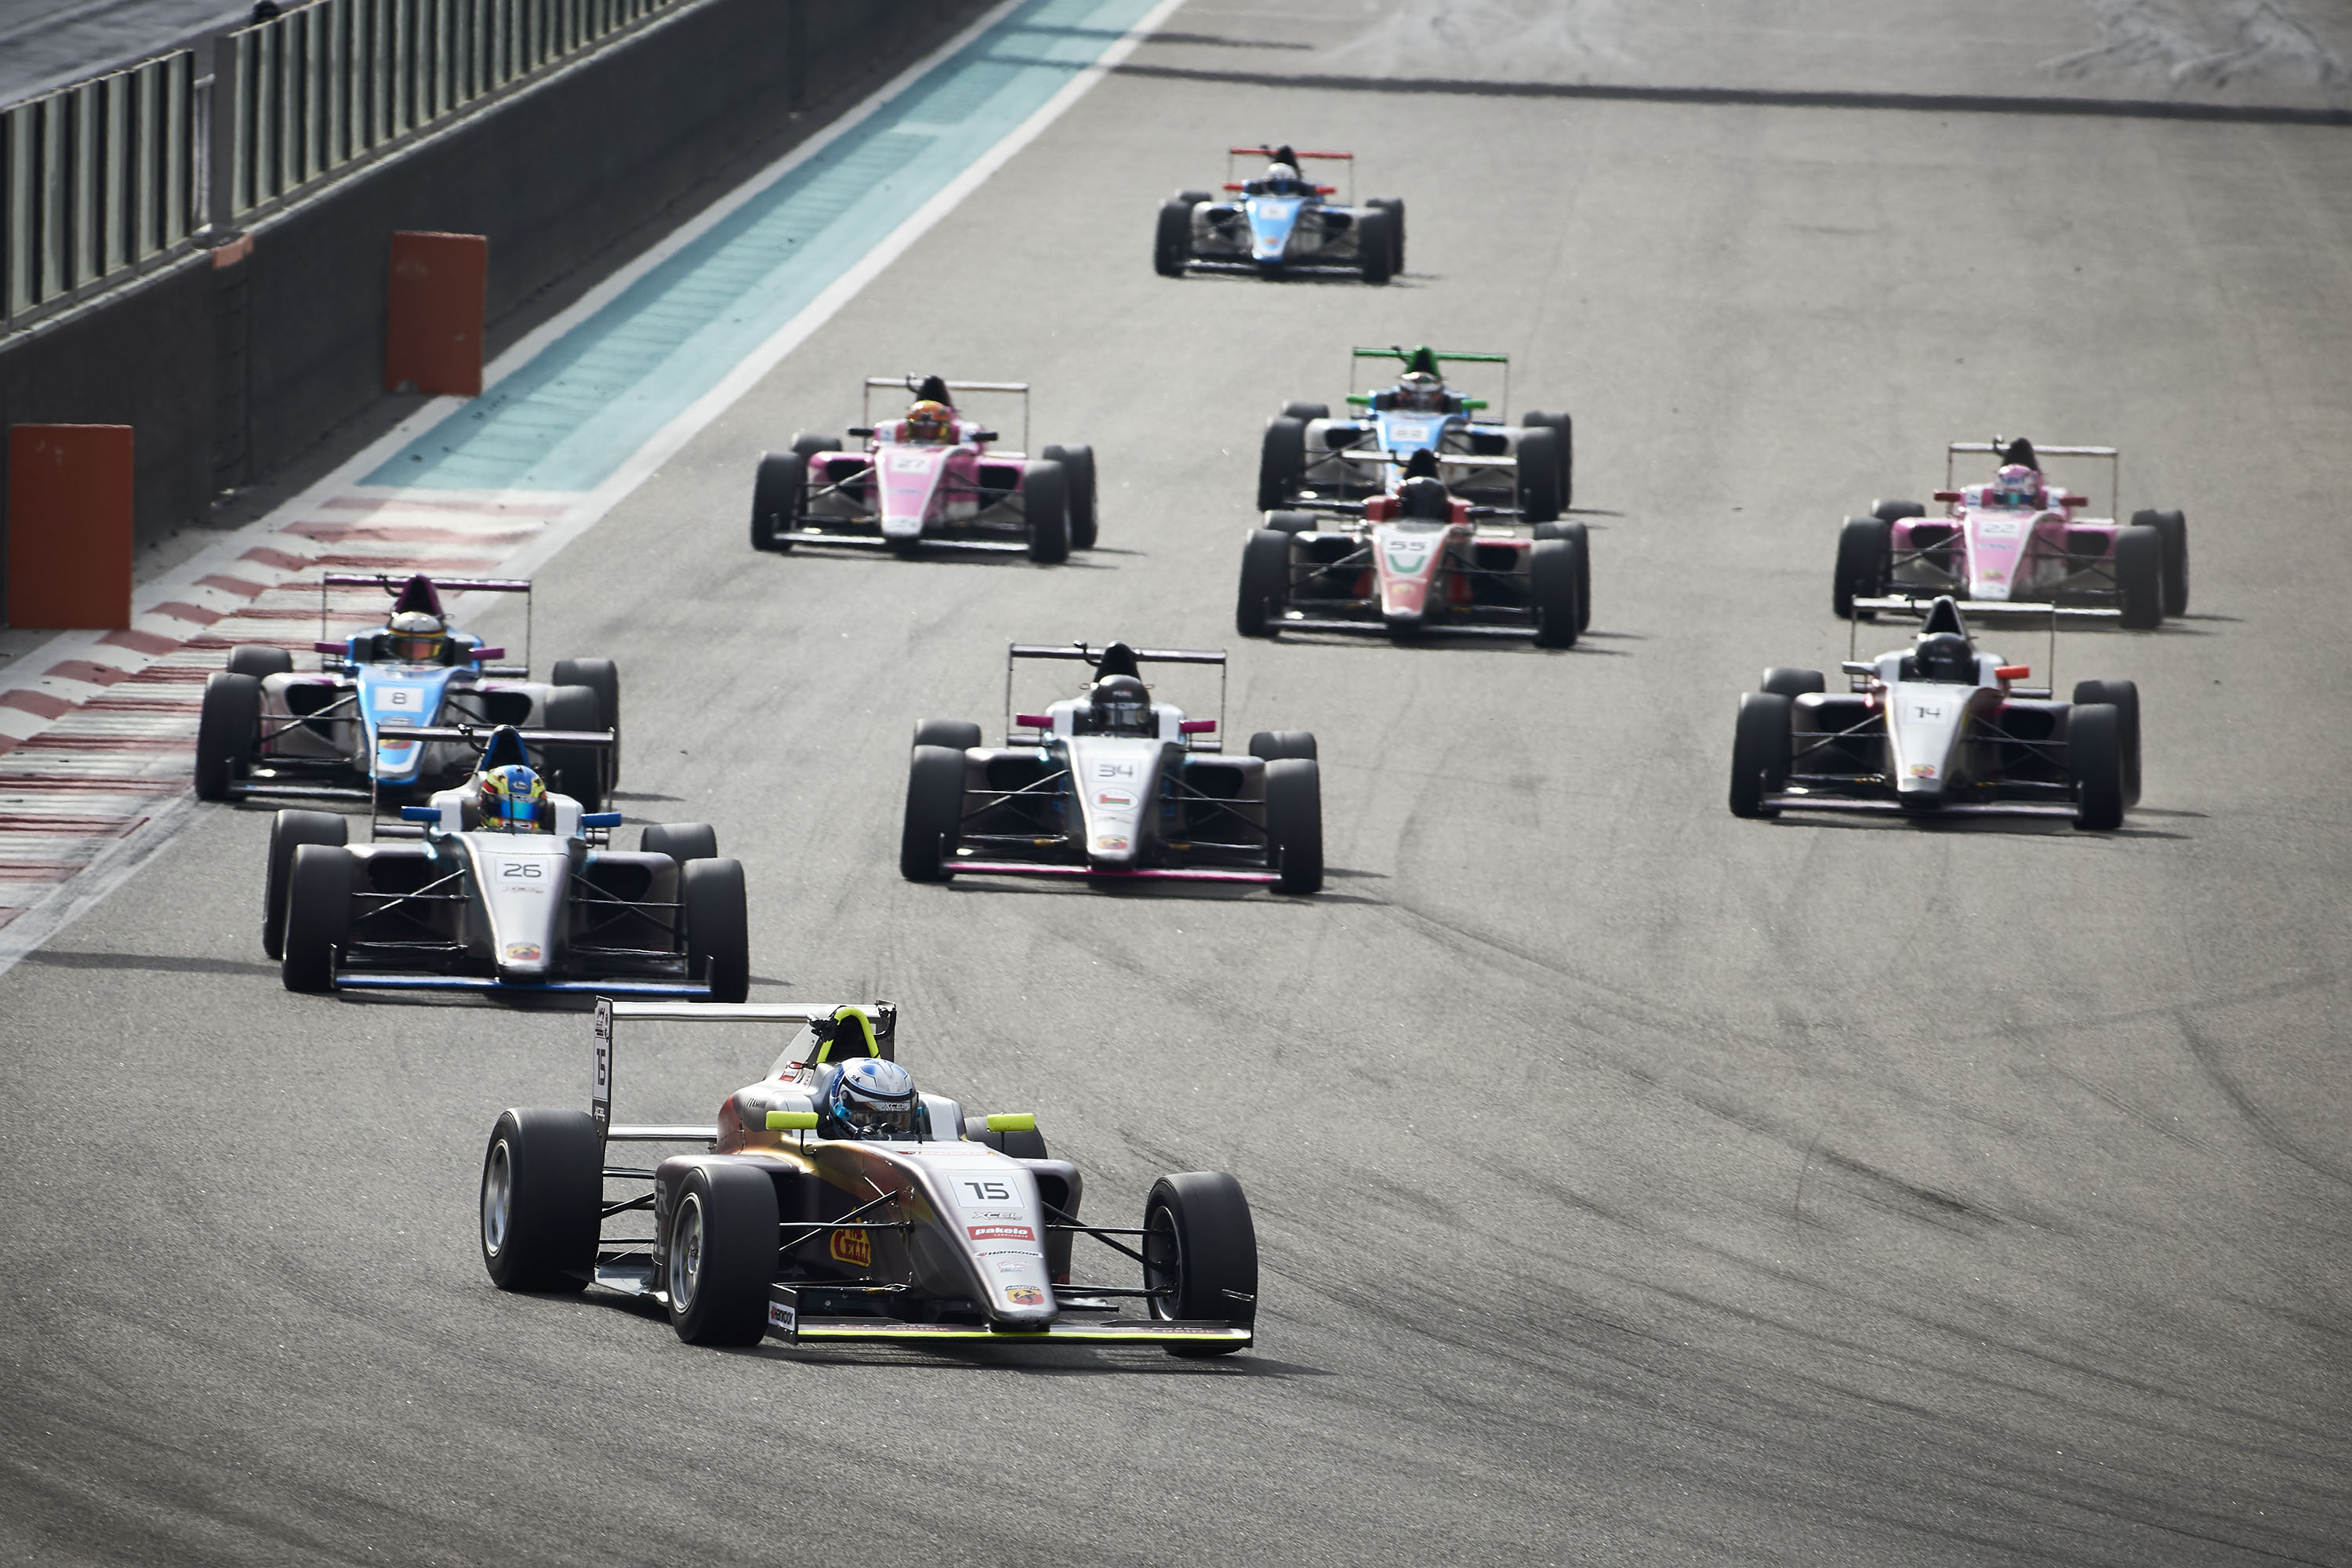 Formula 4 Uae - 2020 F4Uae Calendar Confirms Maiden Formula 1® Support